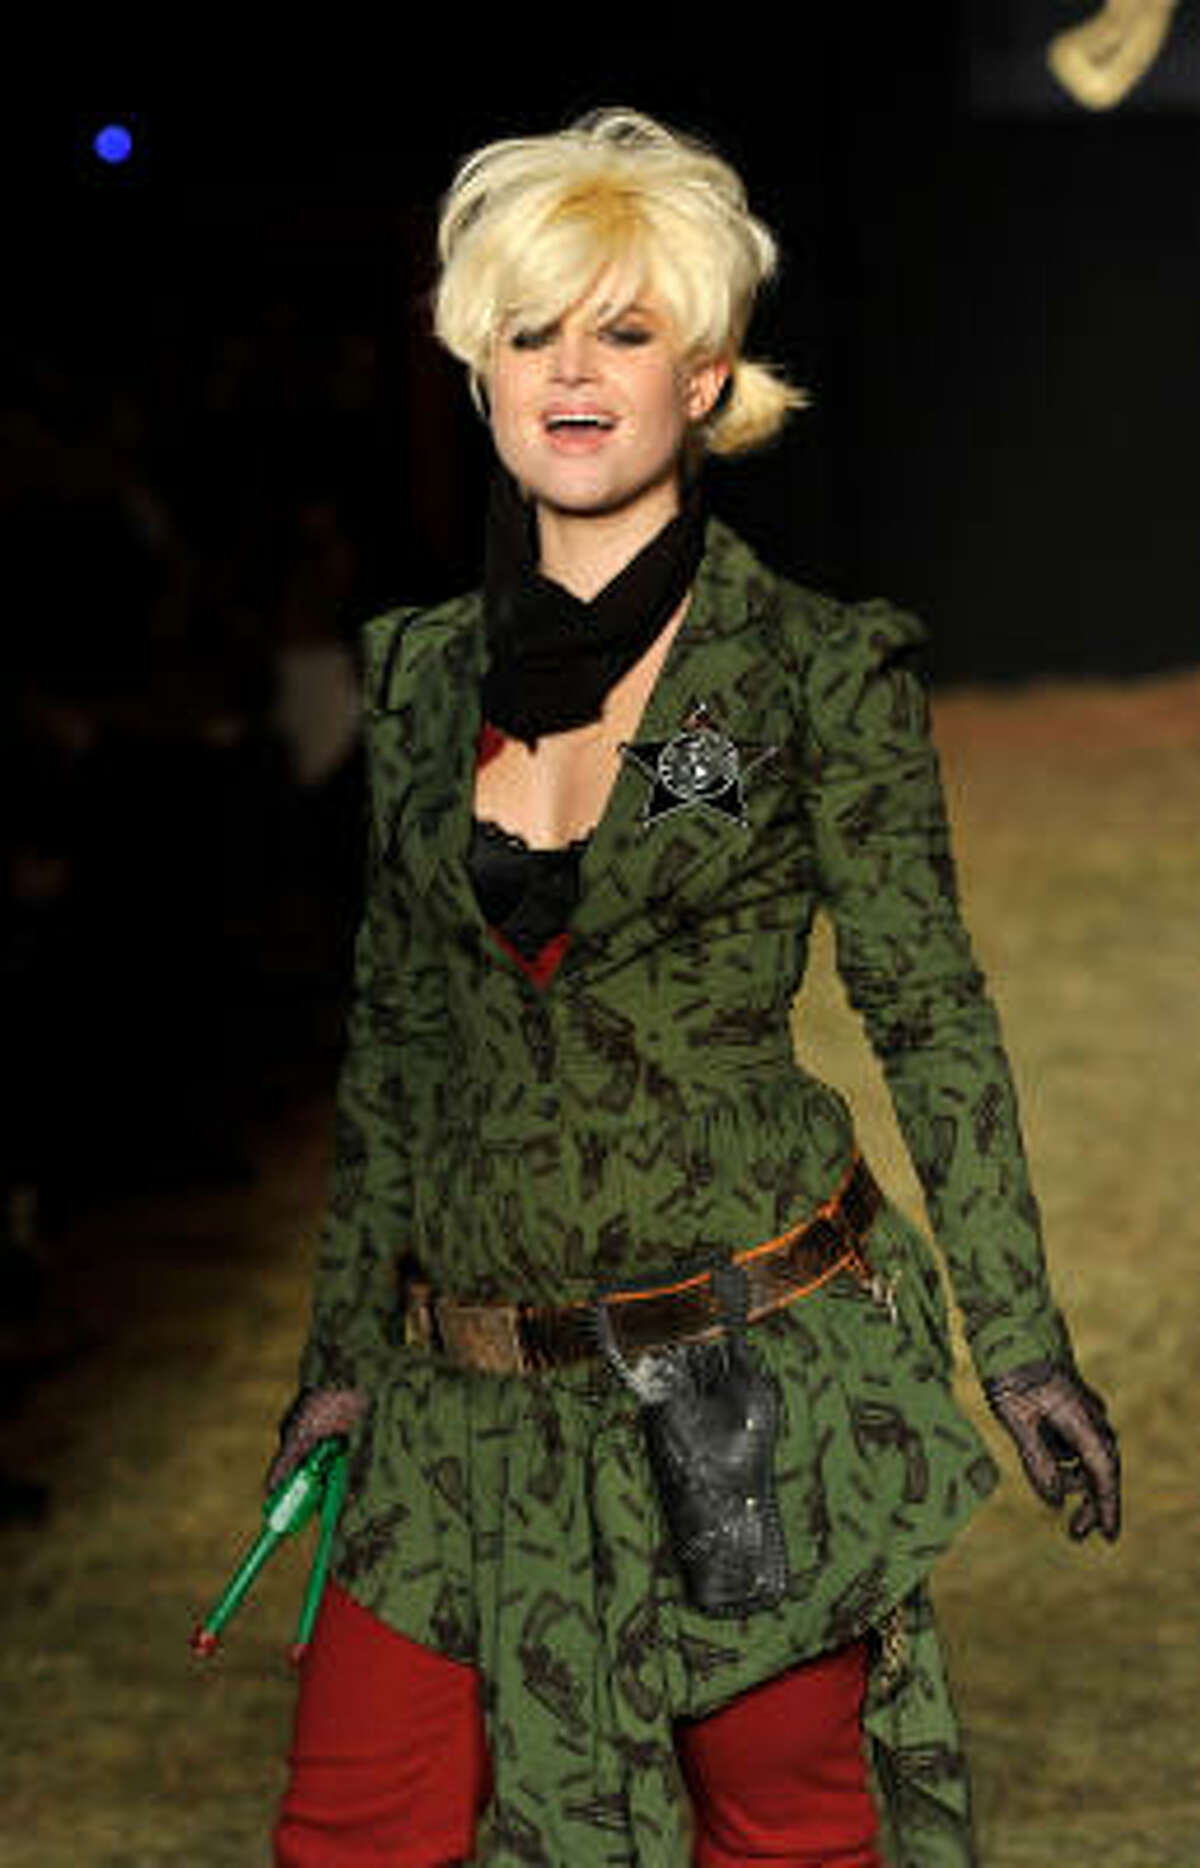 Kelly Osbourne walks the runway at the Betsey Johnson Fall 2010 Fashion Show during Mercedes-Benz Fashion Week. See other celebrities that made it to The Big Apple this week.